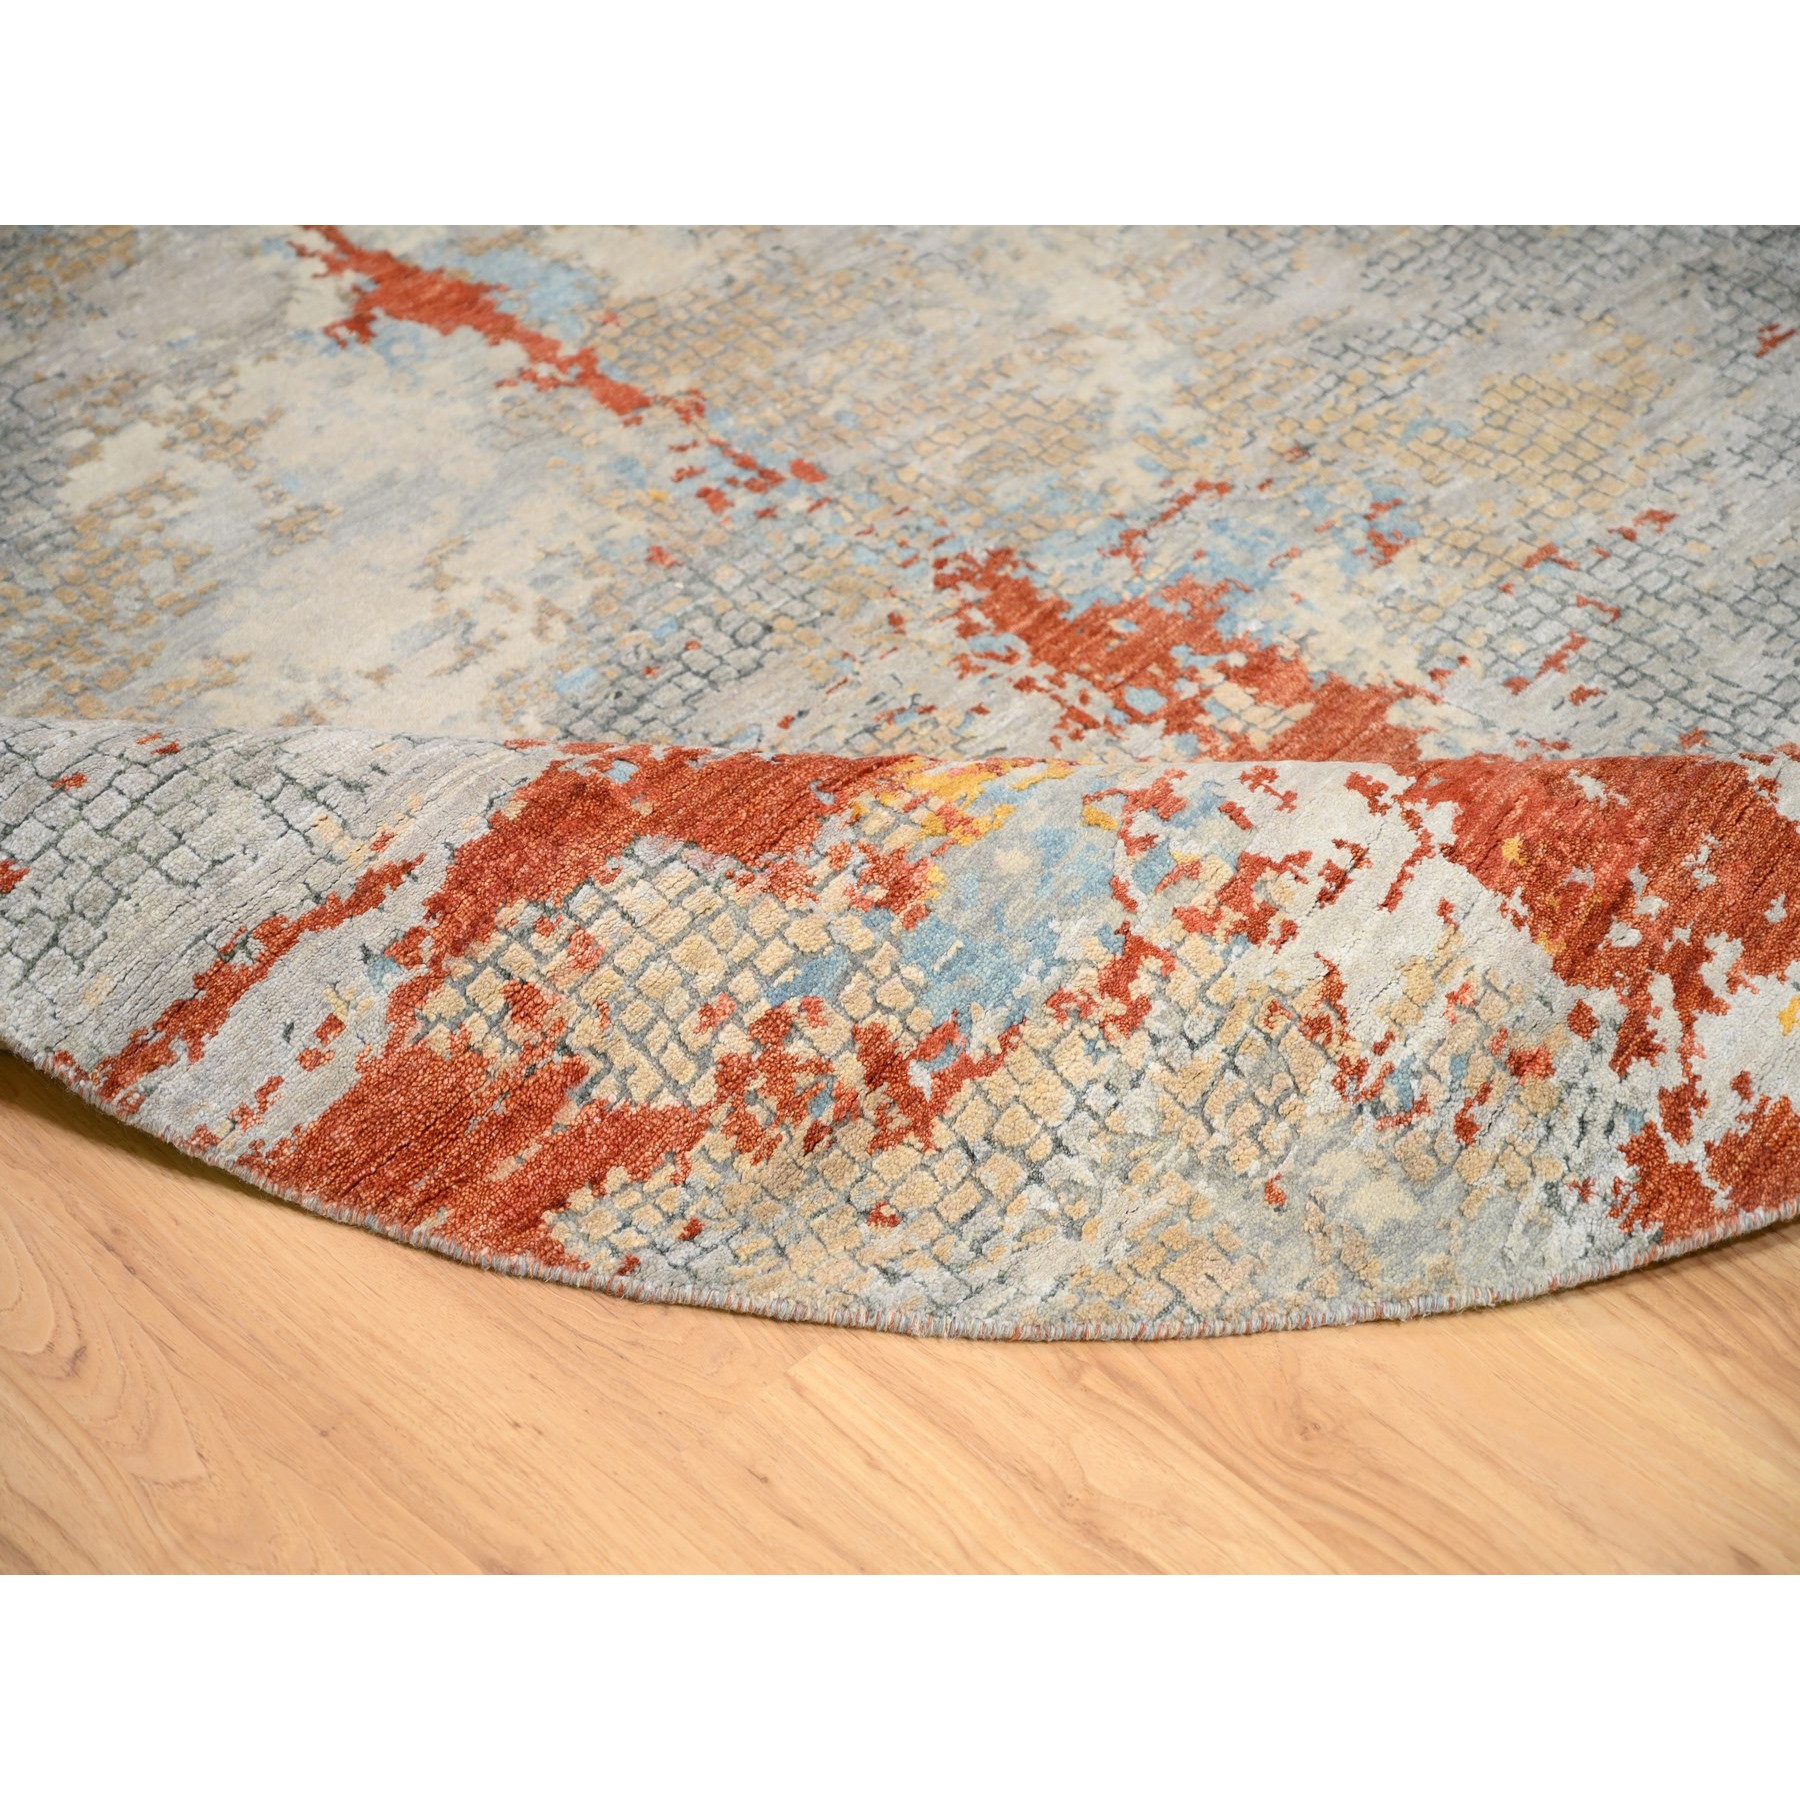 "7'9""x7'9"" Wool And Silk Abstract With Fire Mosaic Design Hand Knotted Oriental Round Rug"